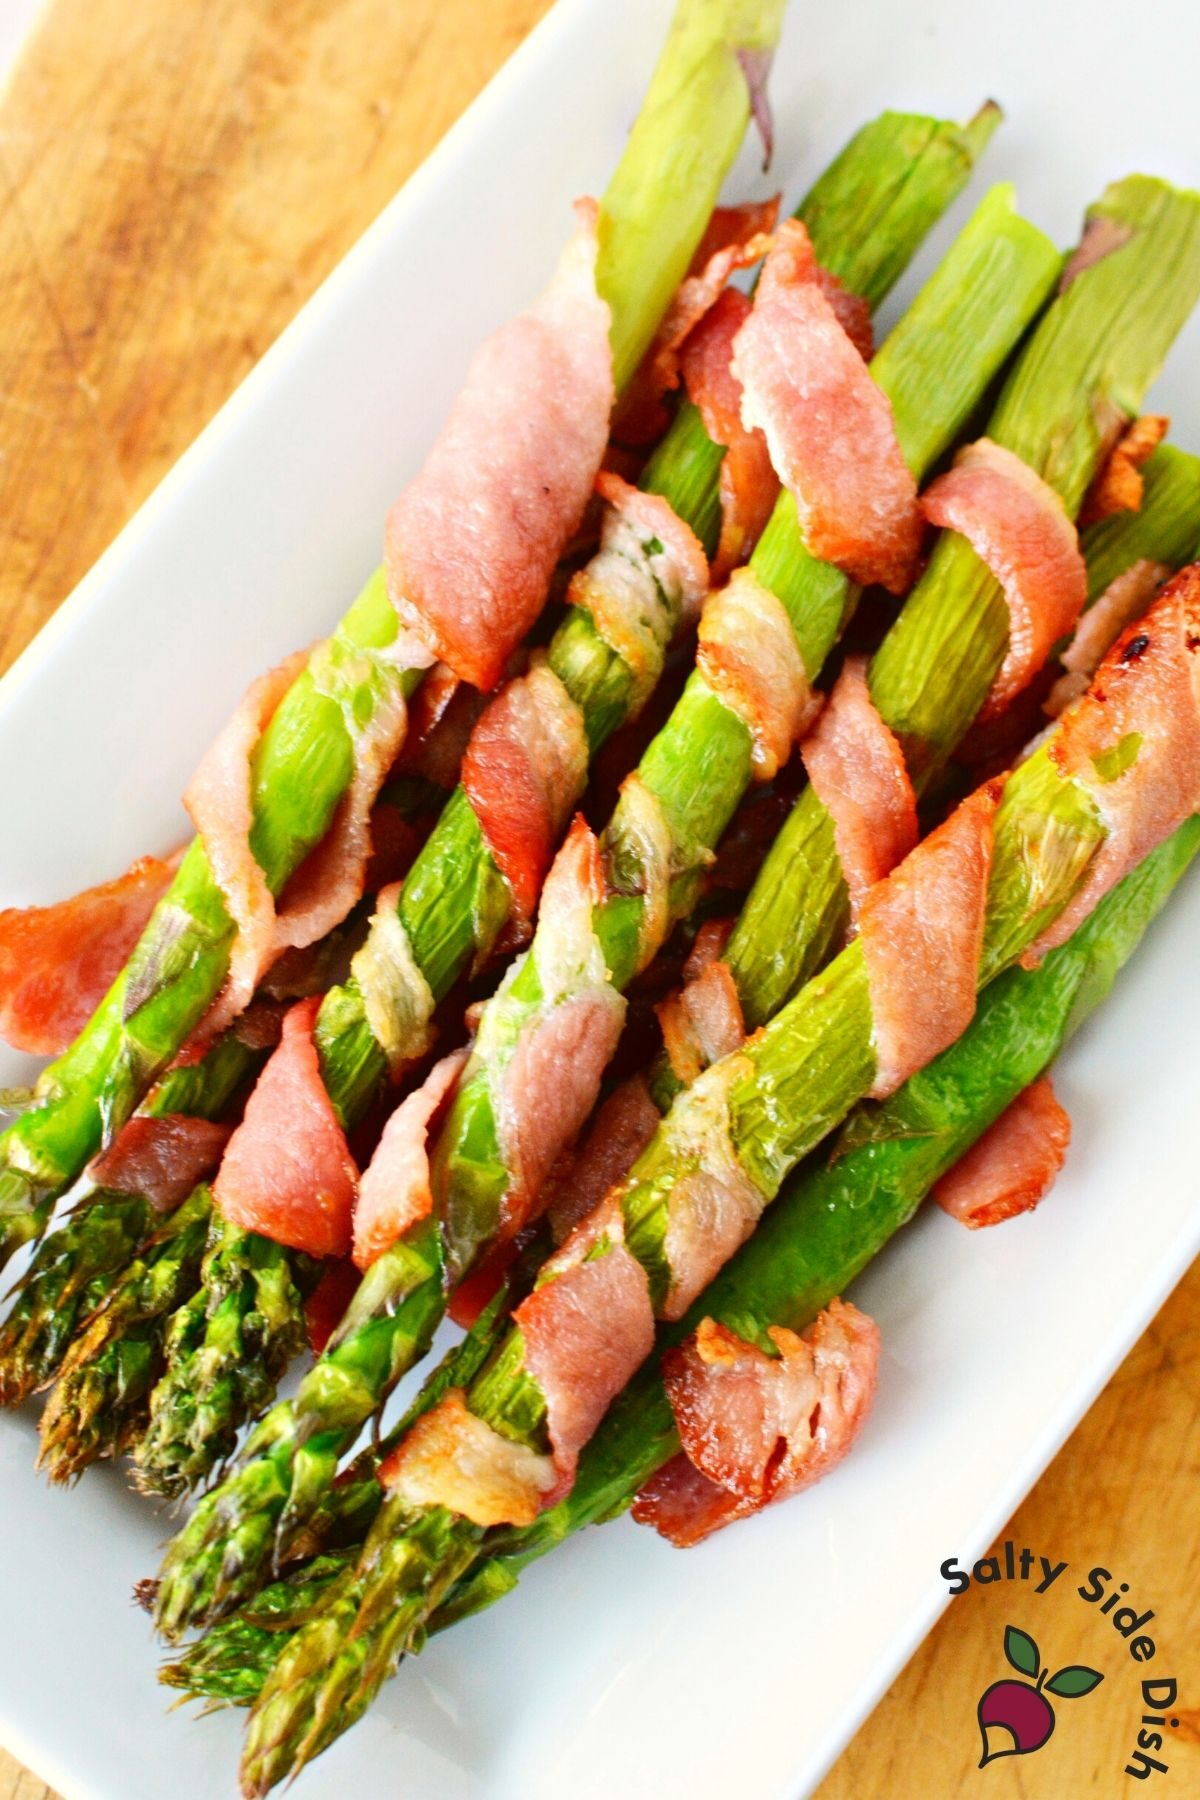 asparagus bacon wrapped from air fryer.